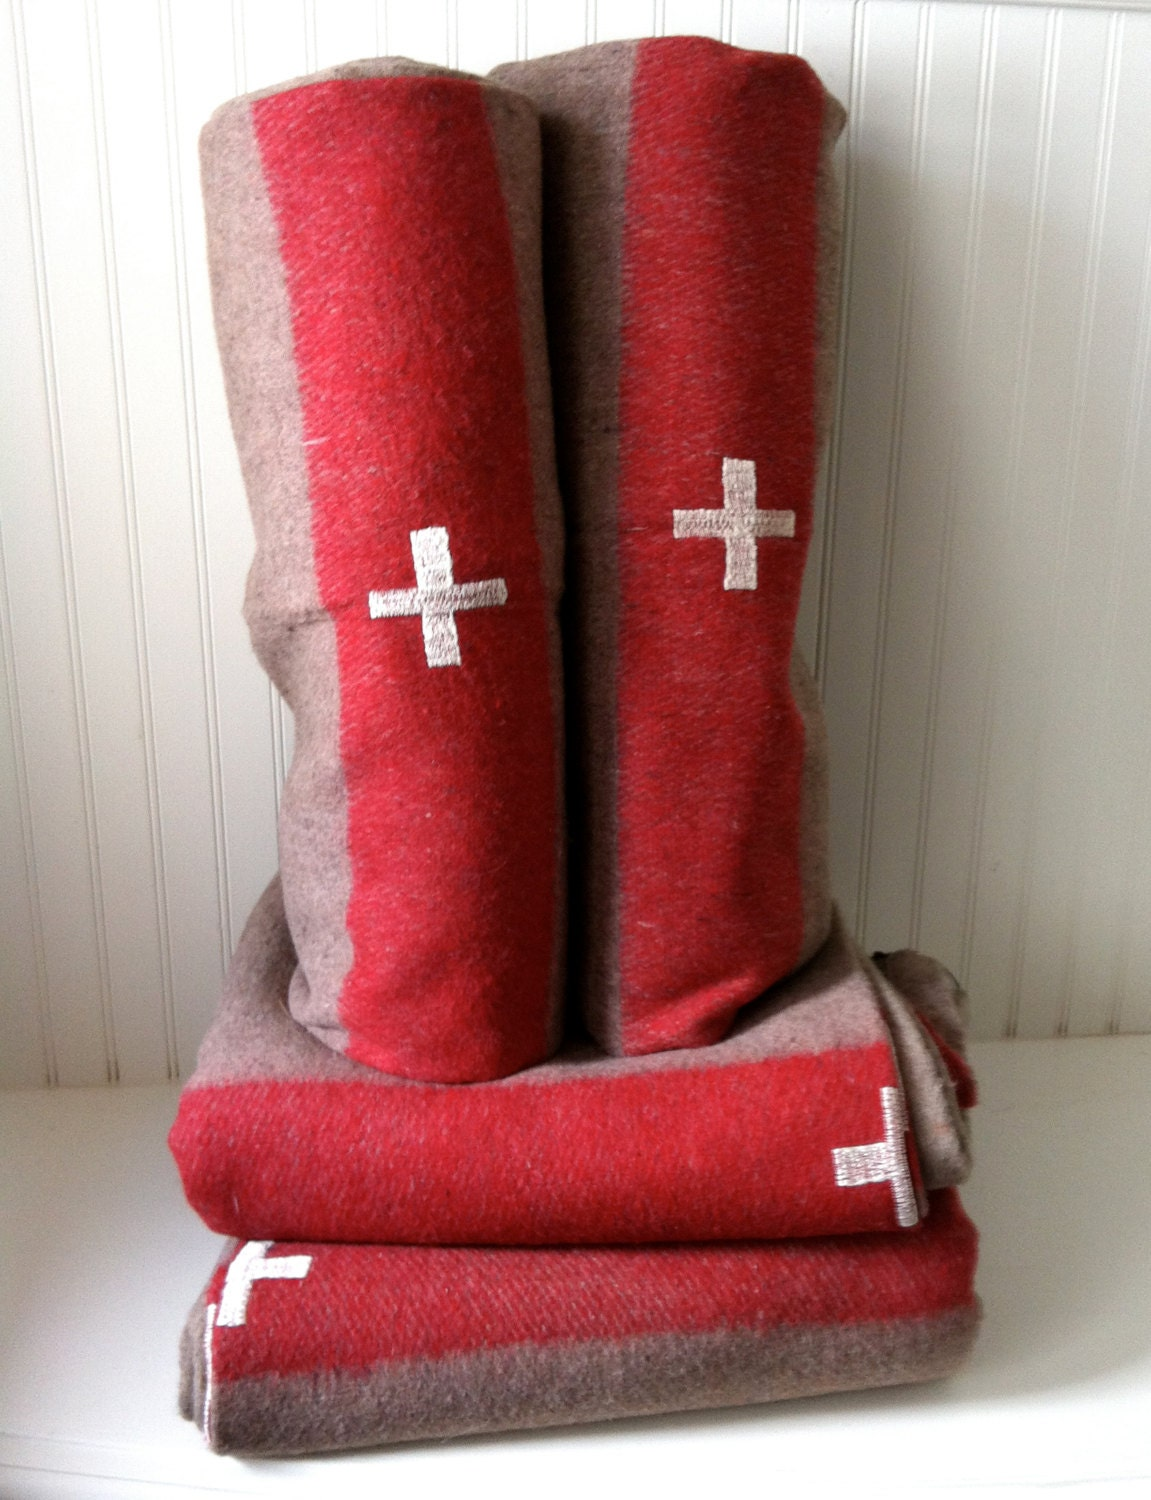 S O L D   O U  T ---Authentic Swiss Army wool blanket -preorder - OdeToJune